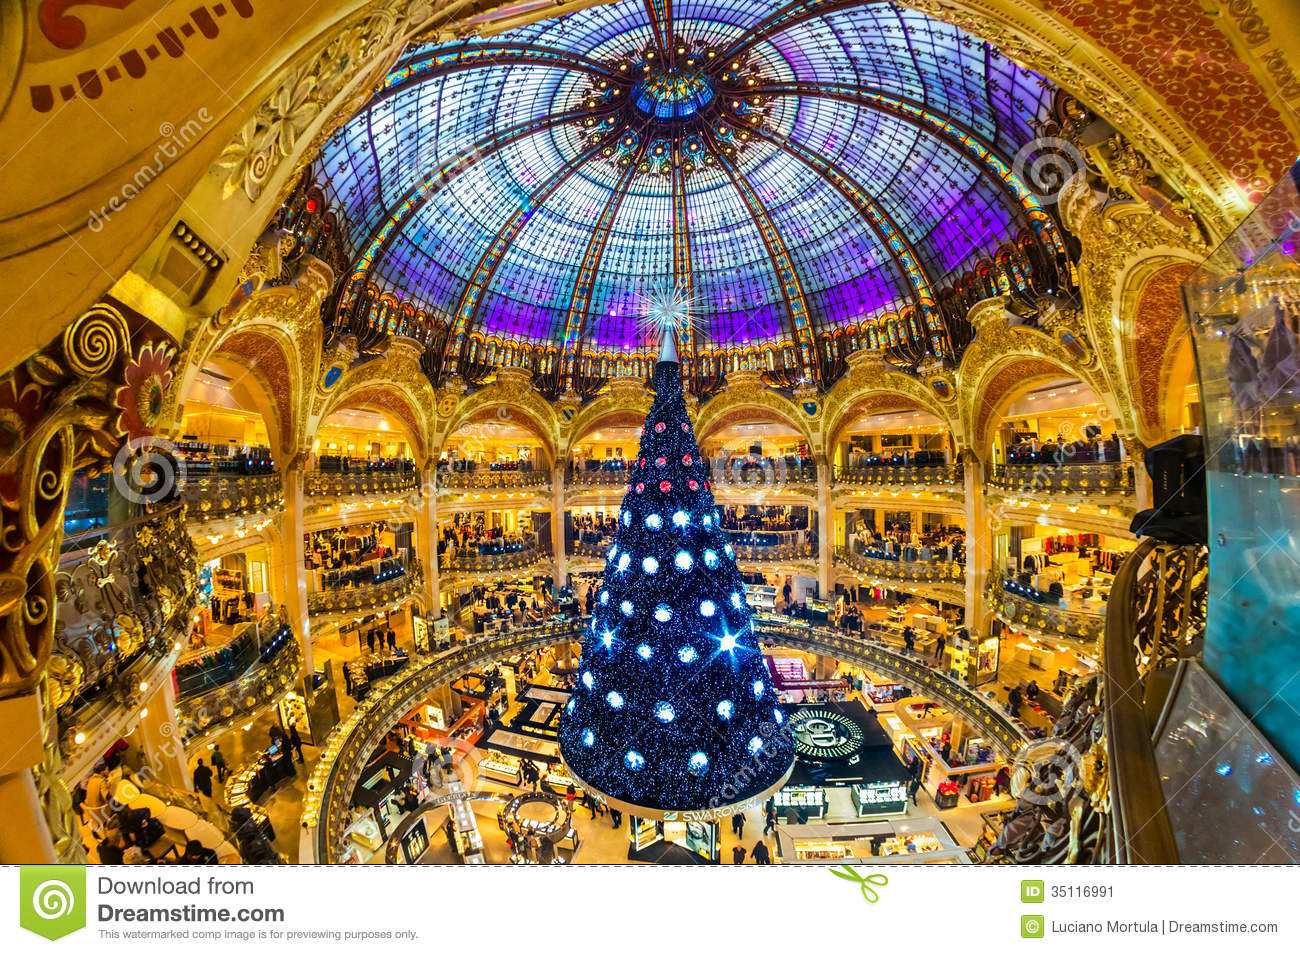 Parijs december 07 de kerstboom in galeries lafayette redactionele foto afbeelding 35116991 - Decoratie themakamer paris ...